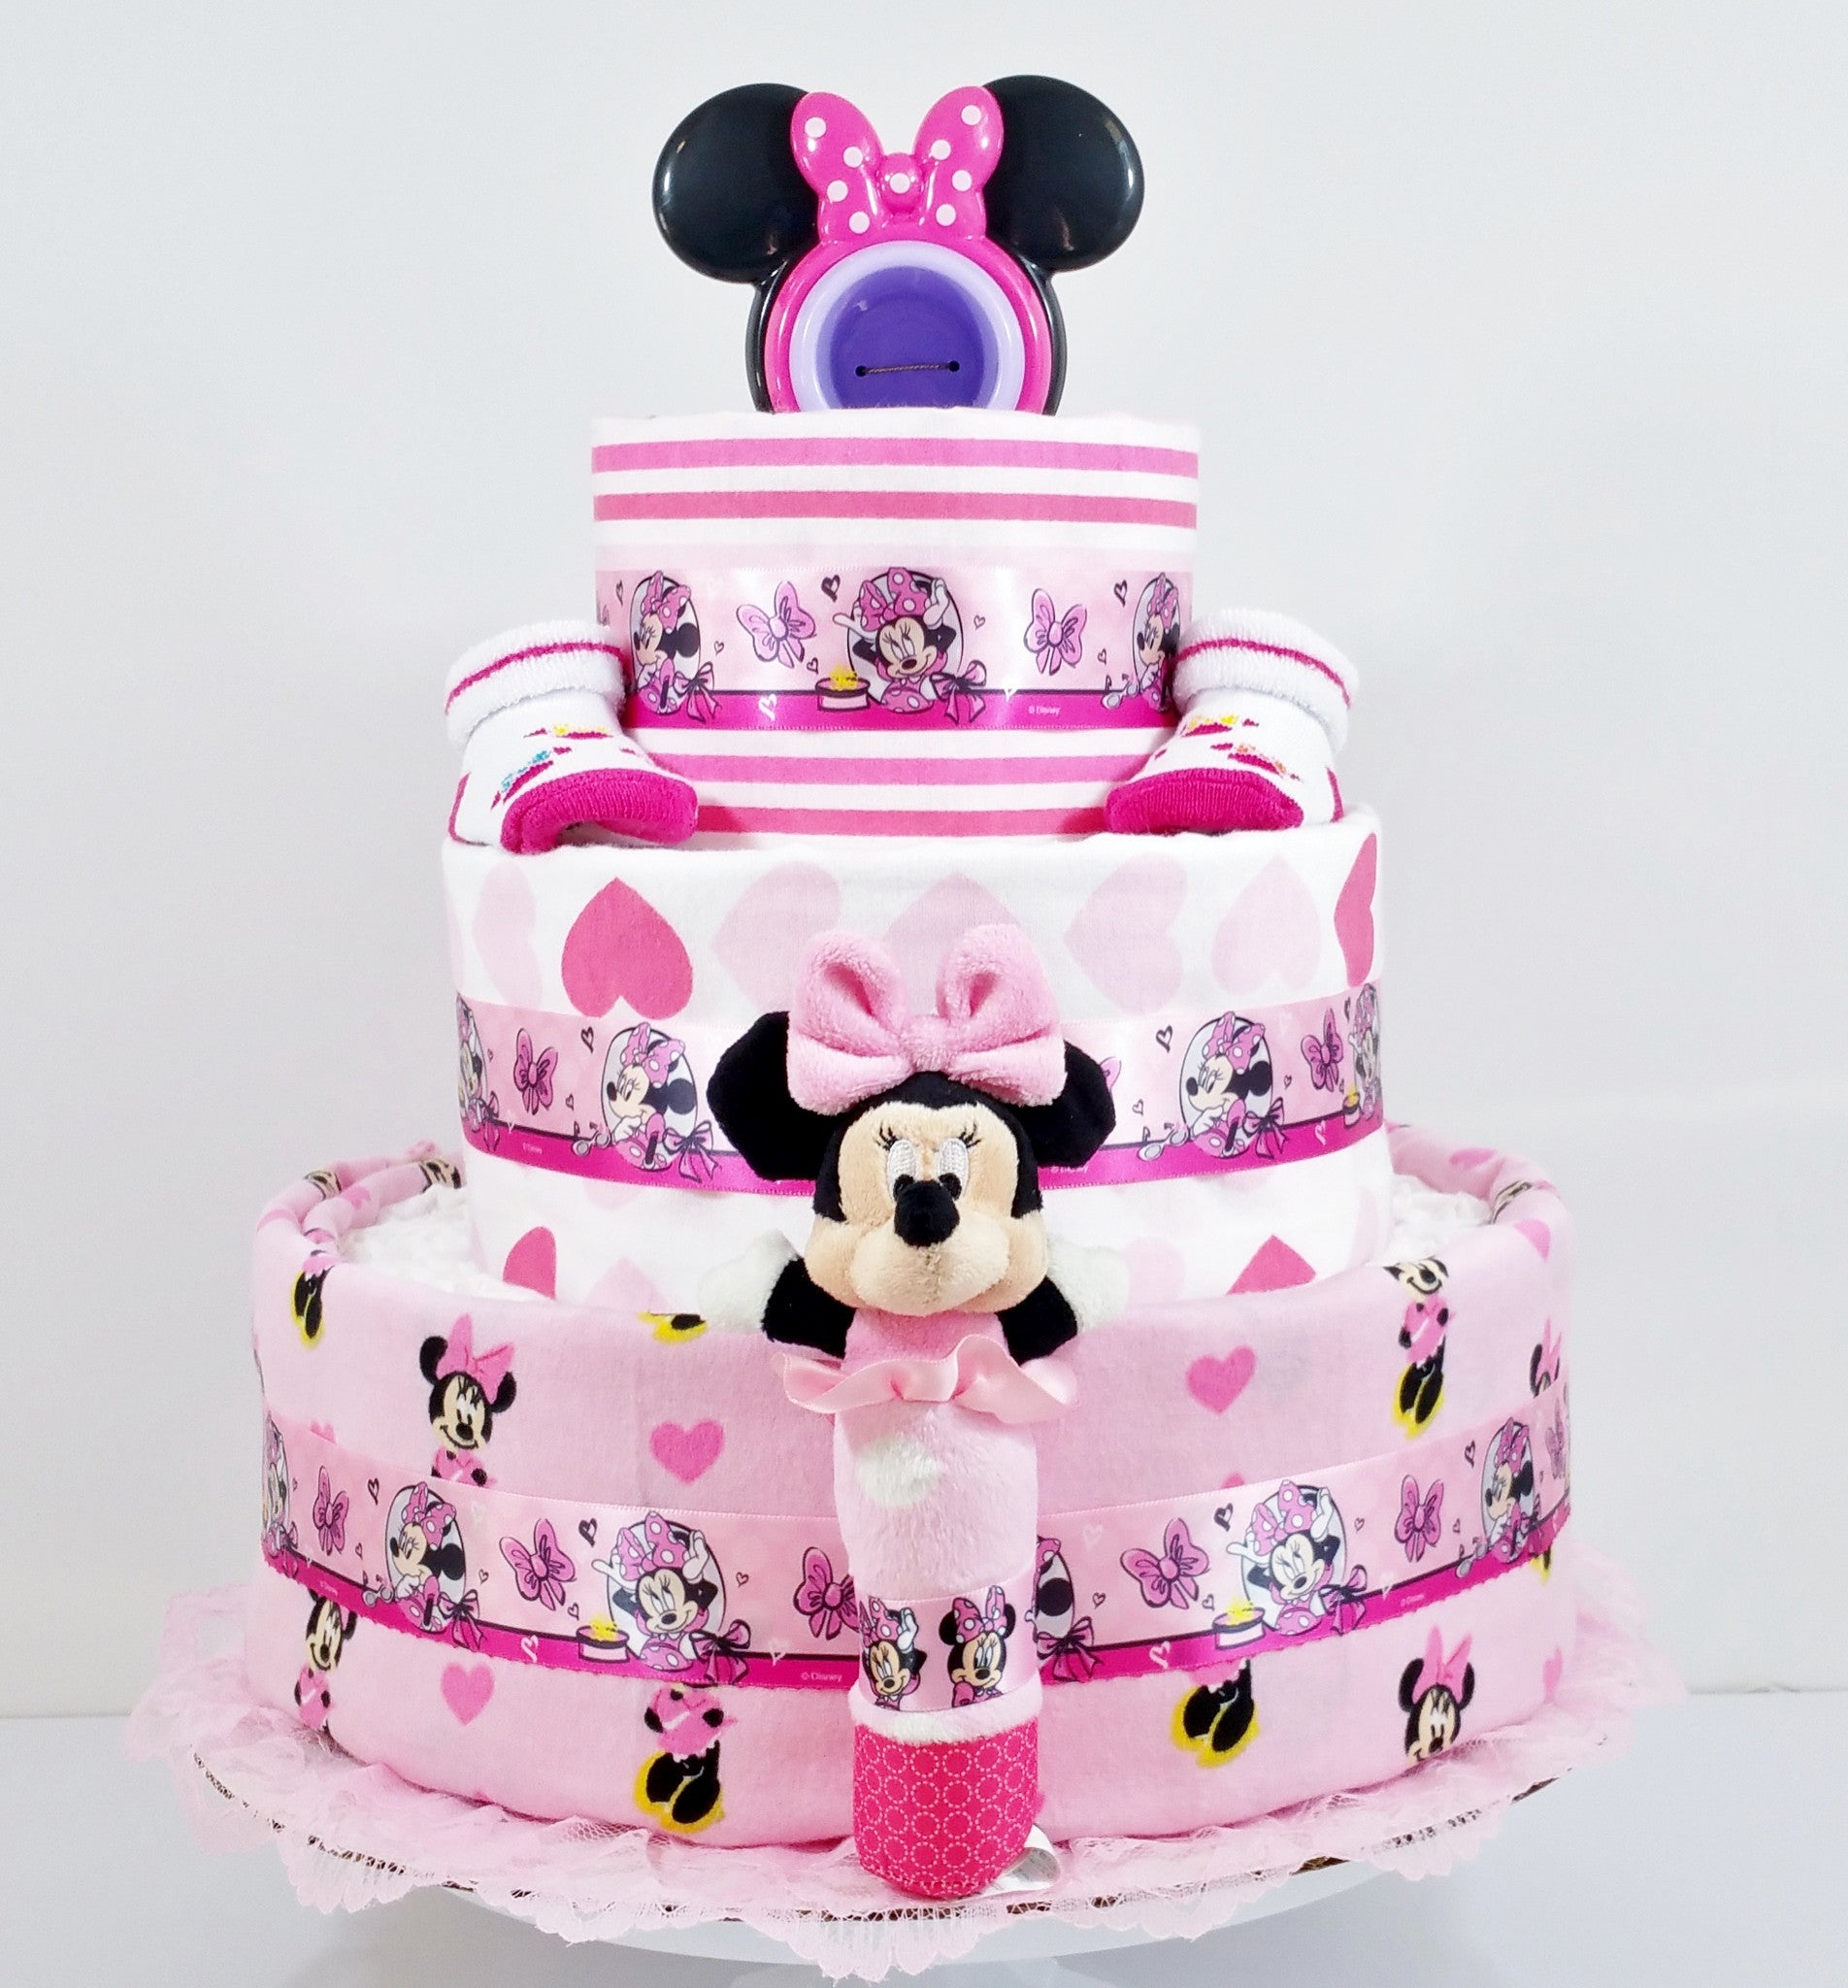 Diaper Birthday Cake For  Year Old